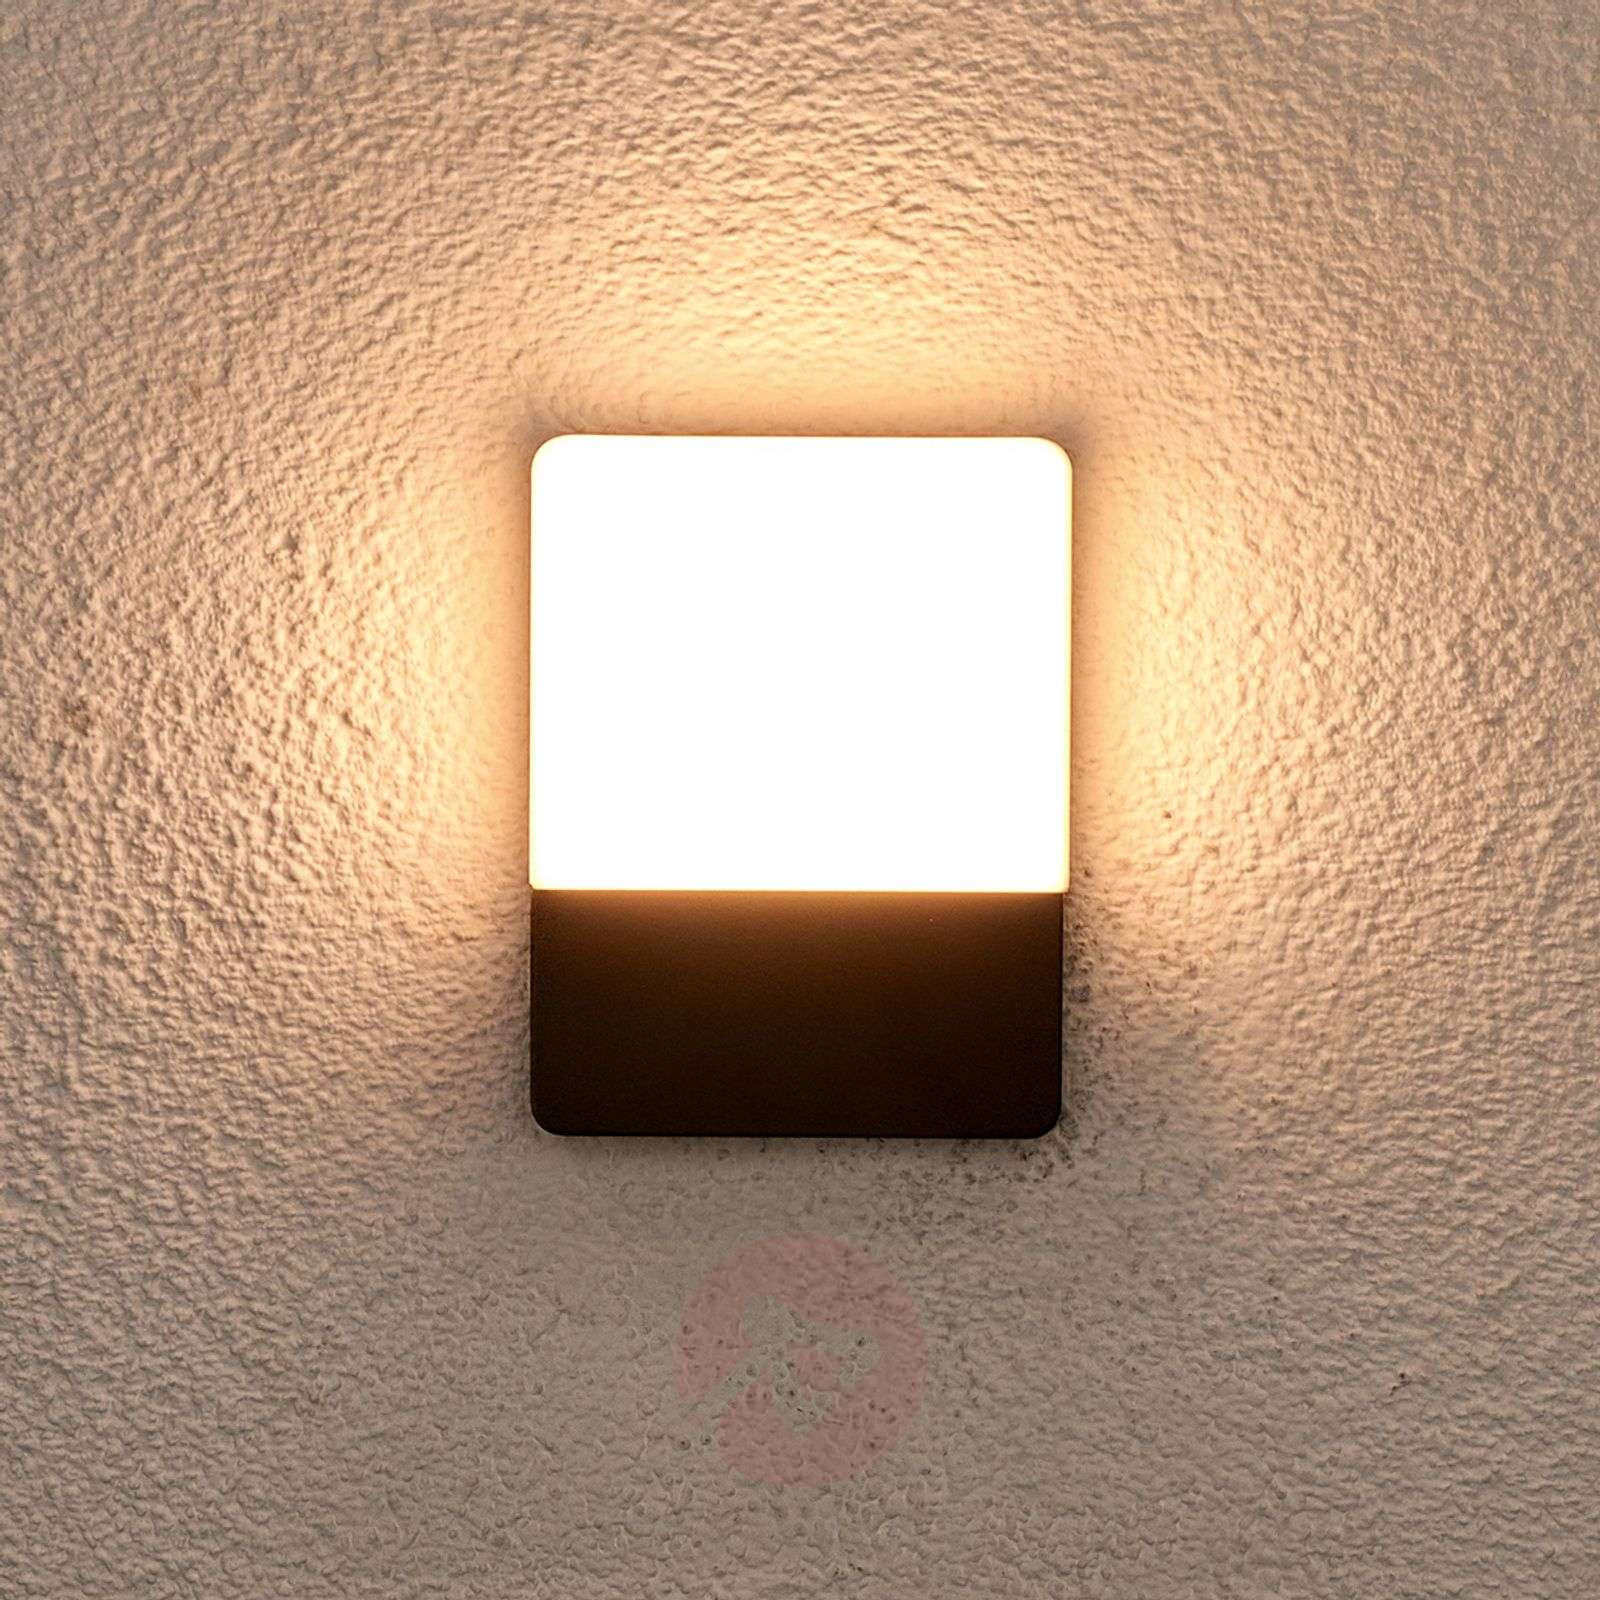 Annu angular LED outdoor wall light-9647050-02